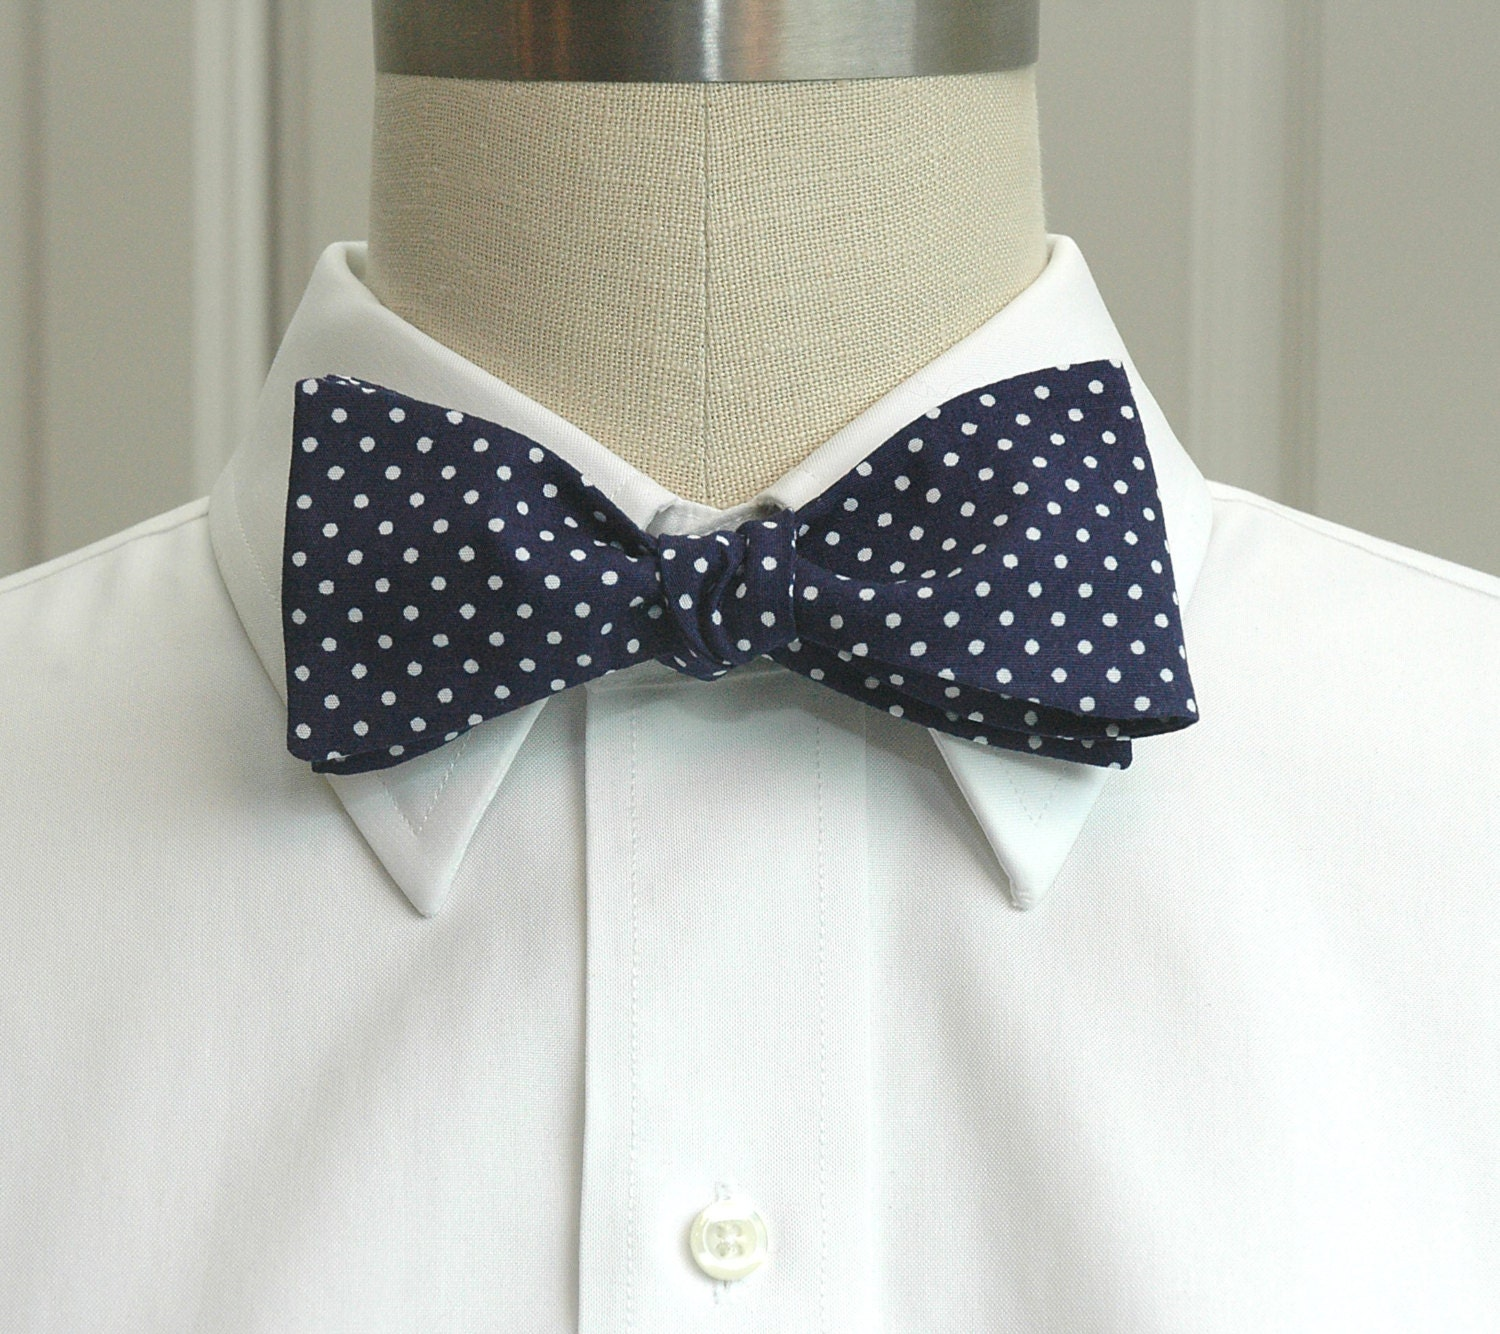 65a9a13a3460 Men's Bow Tie, navy blue with white mini dots bow tie, Churchill bow ...